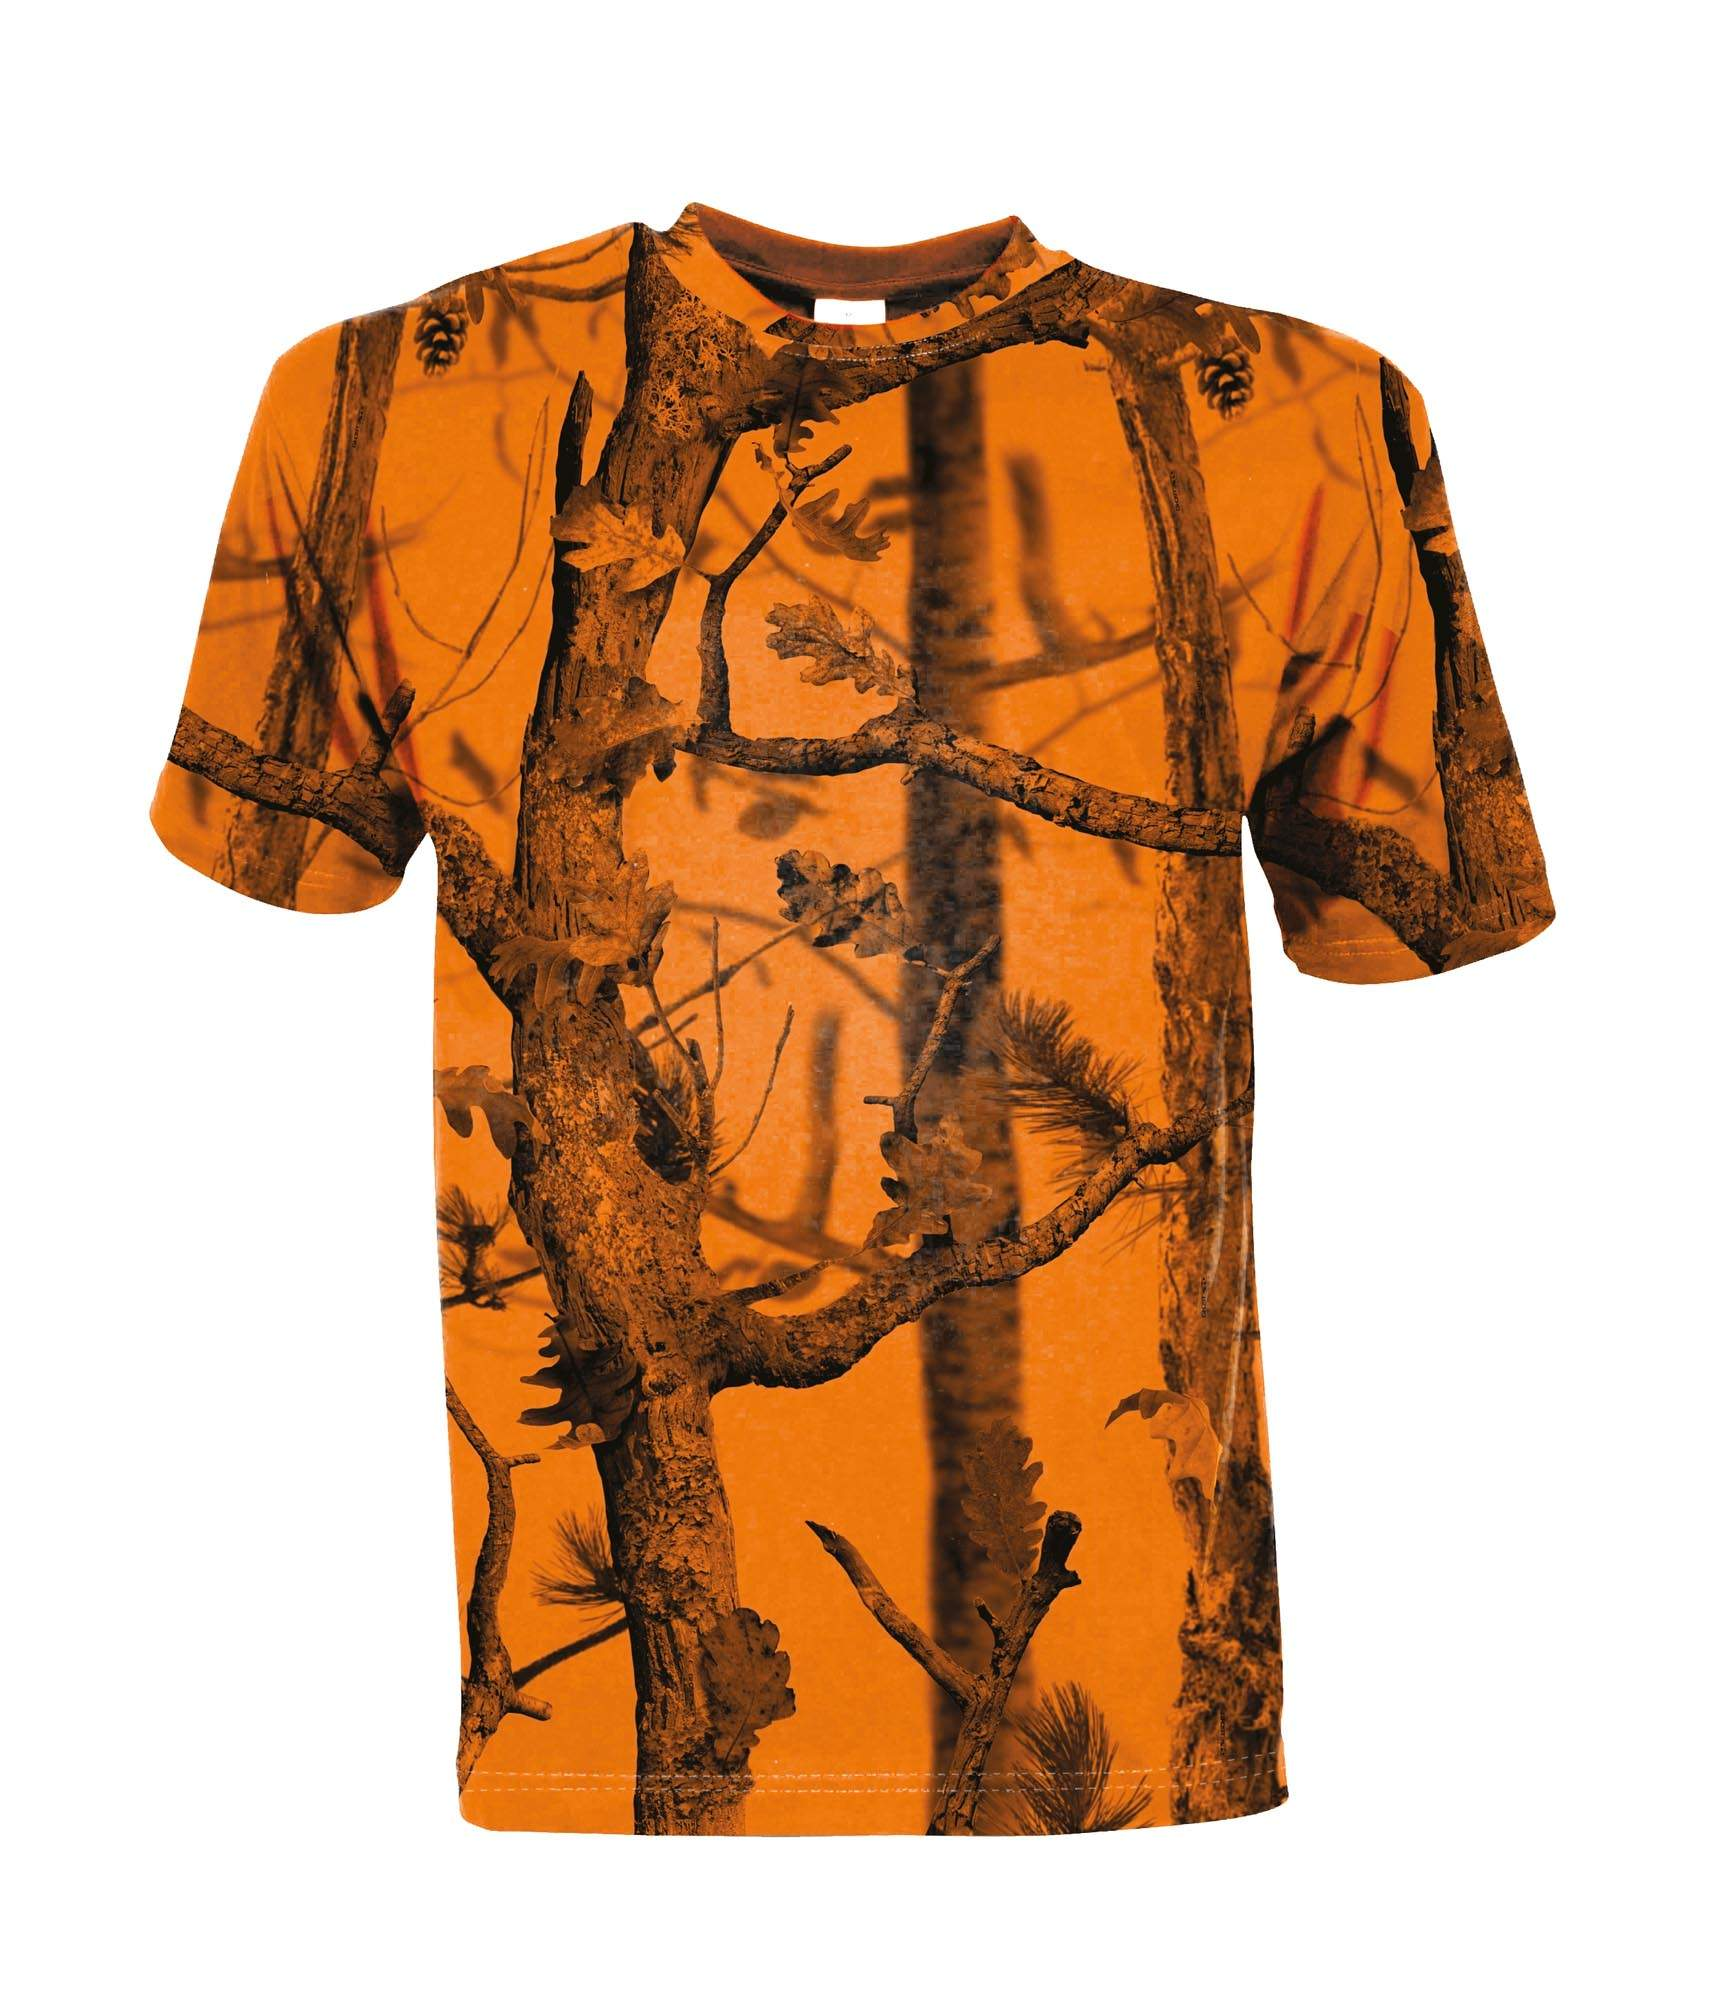 T-SHIRT CHASSE GHOST CAMO - VC71879